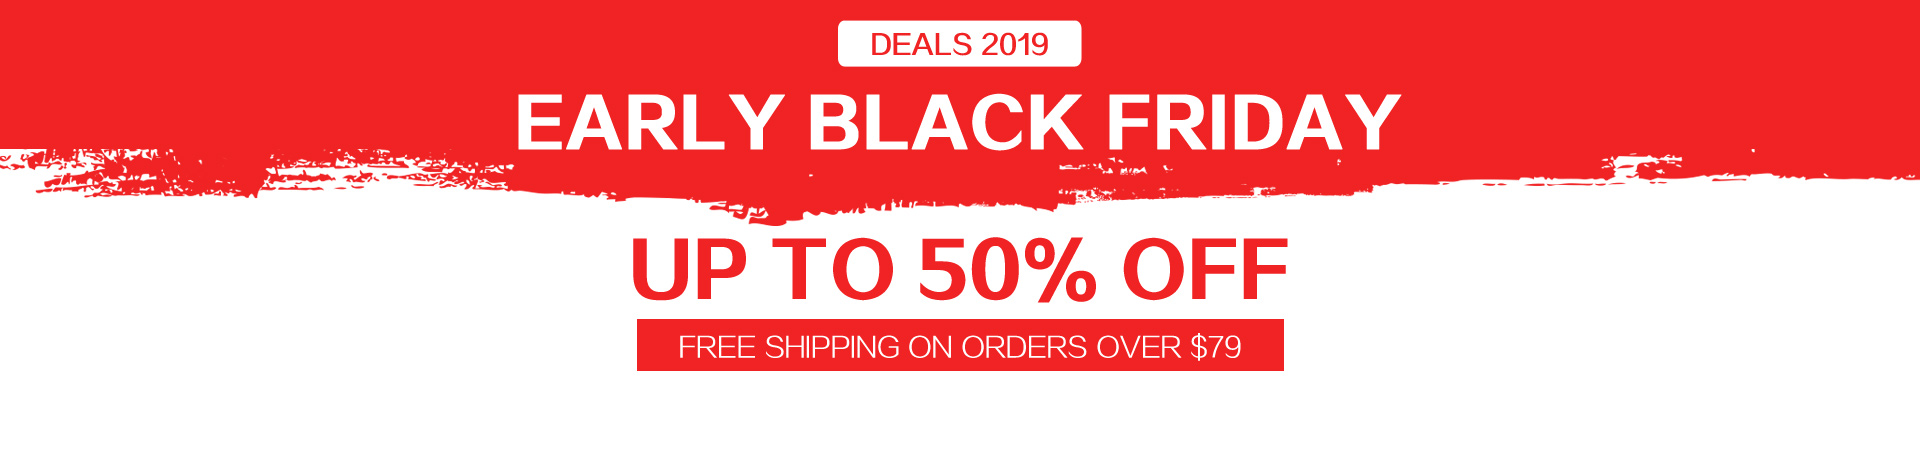 Early Black Friday Deals 2019